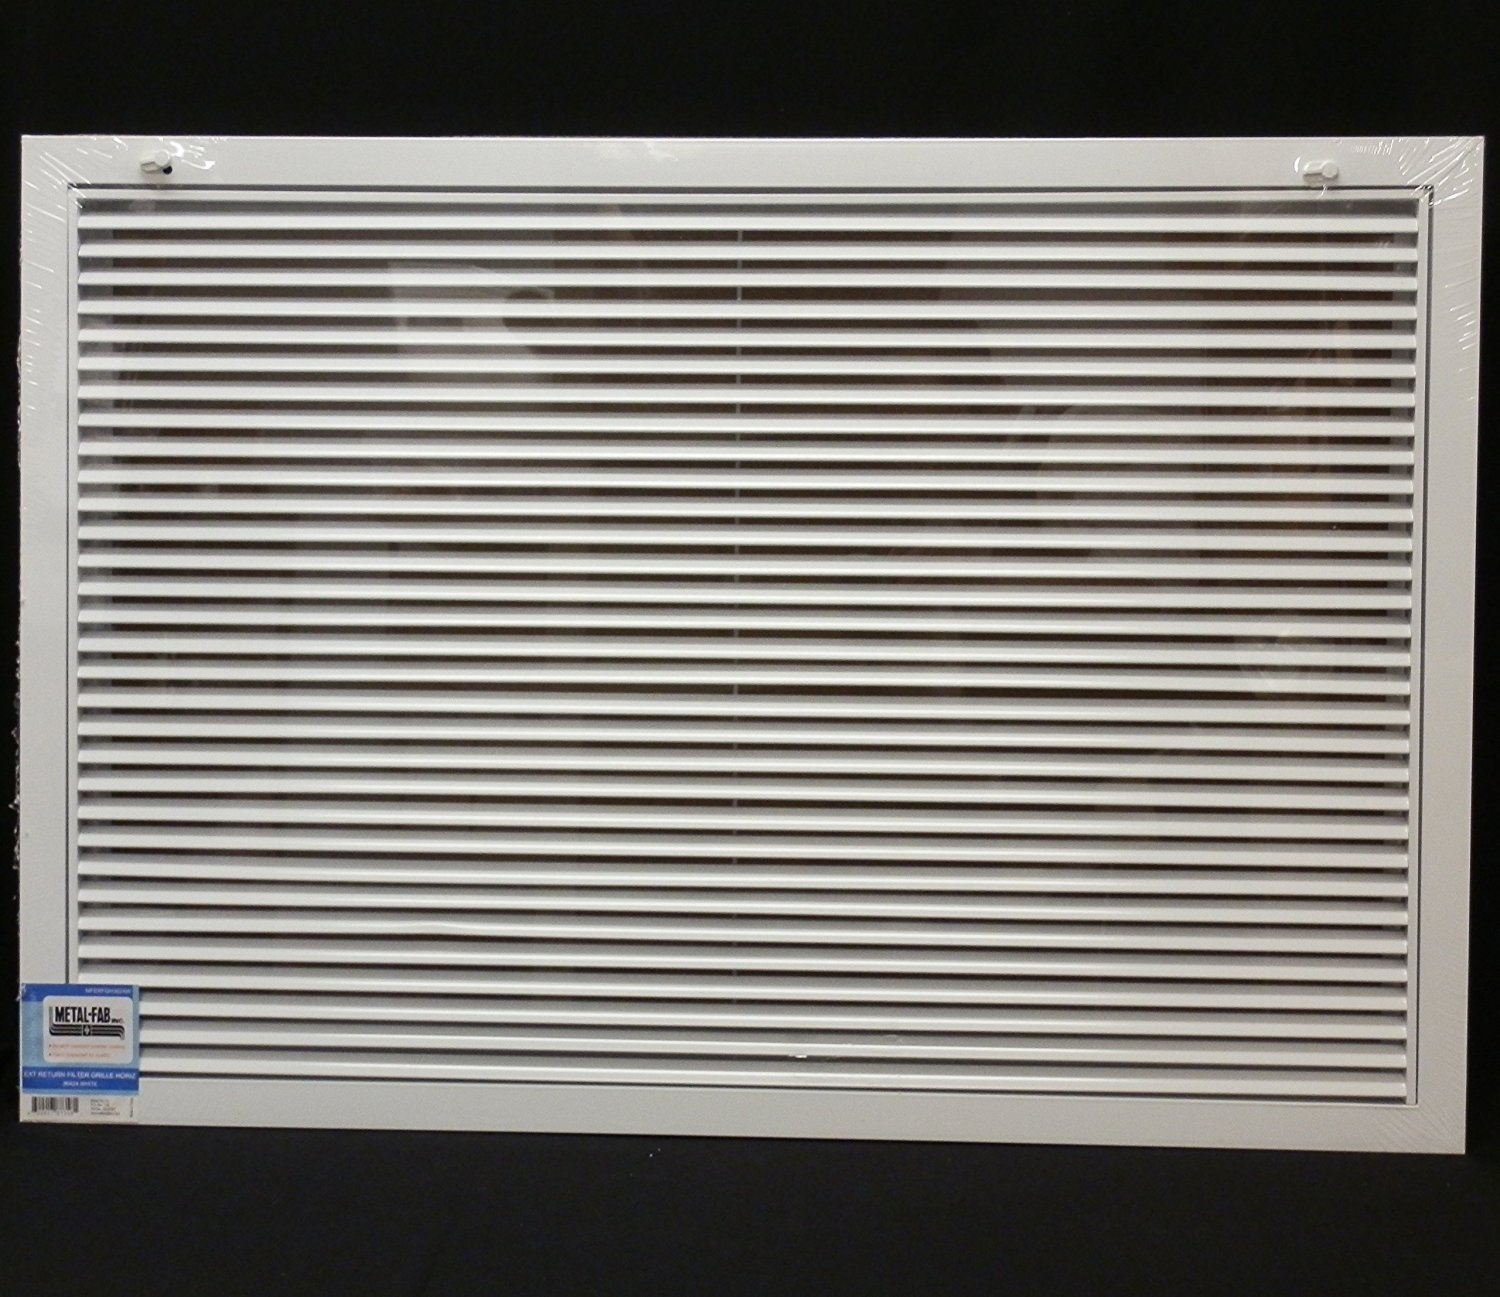 30'' x 24'' Aluminum Return Filter Grille - Easy Air FLow - Linear Bar Grilles [Outer Dimensions: 32.5''w X 26.5''h]